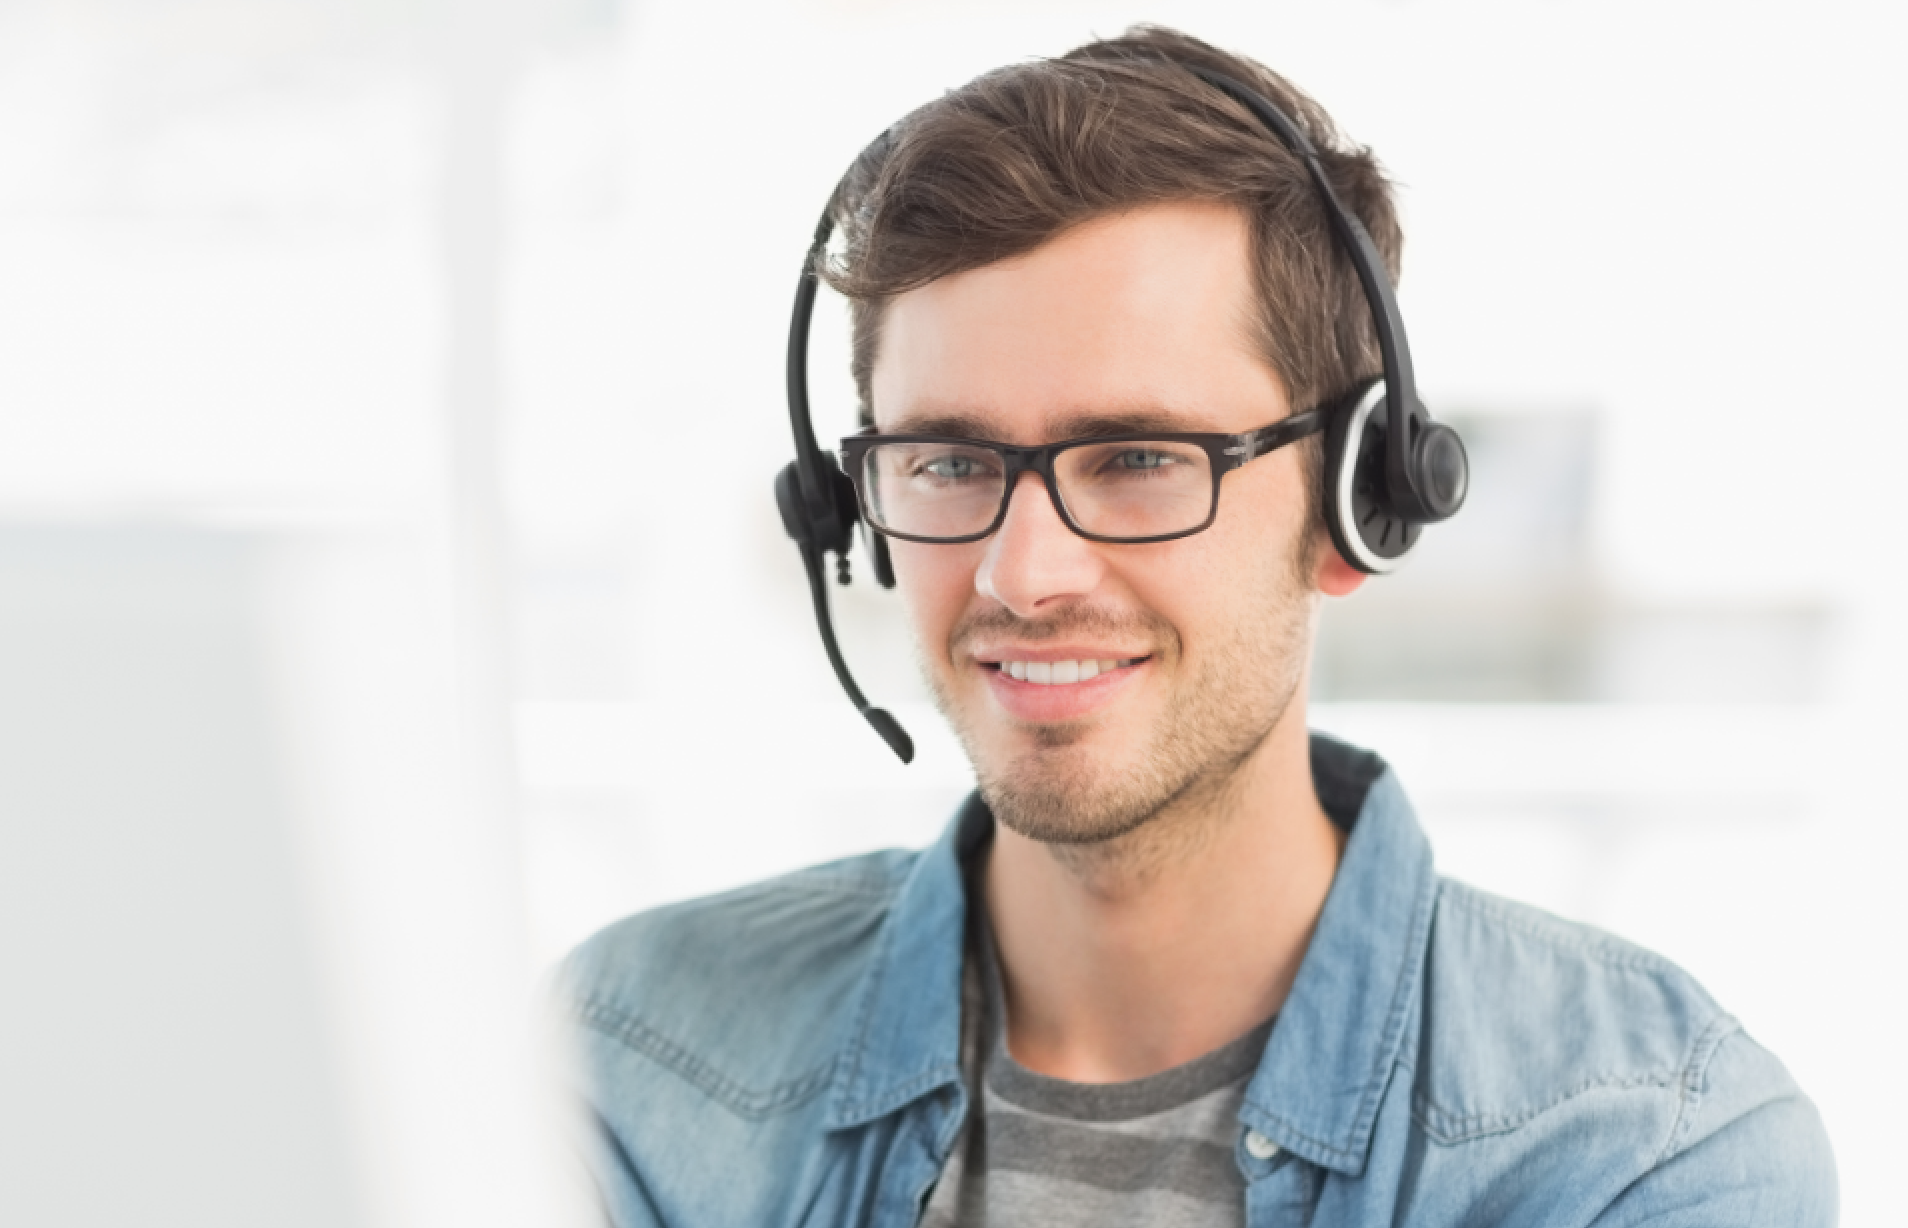 Call Center Bank: Who Is the One Answering Your Call